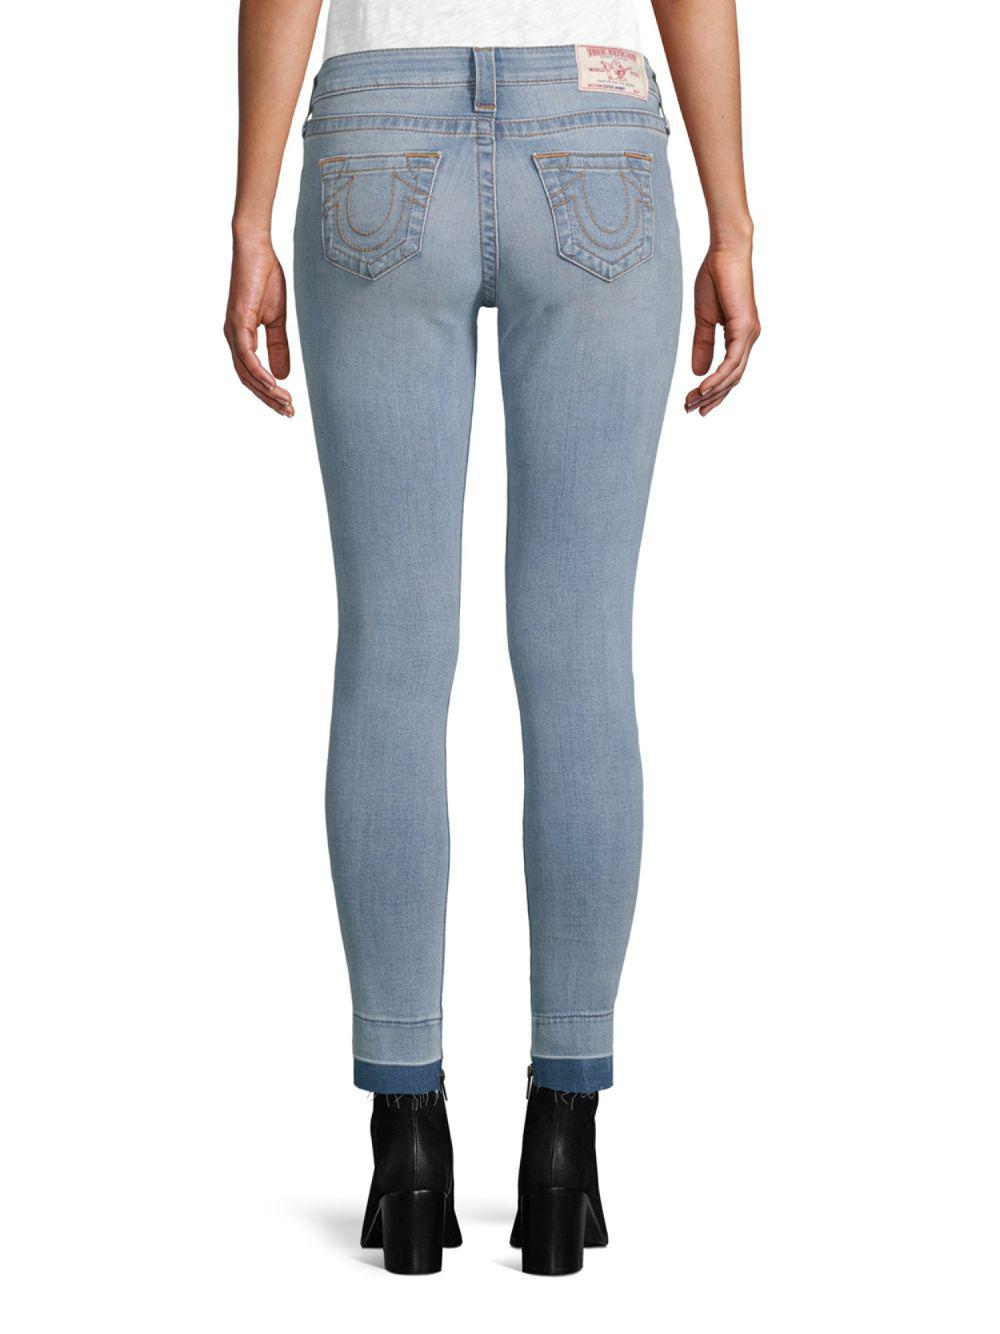 a1d51a7d8572d True Religion Ankle-length Skinny Jeans in Blue - Lyst